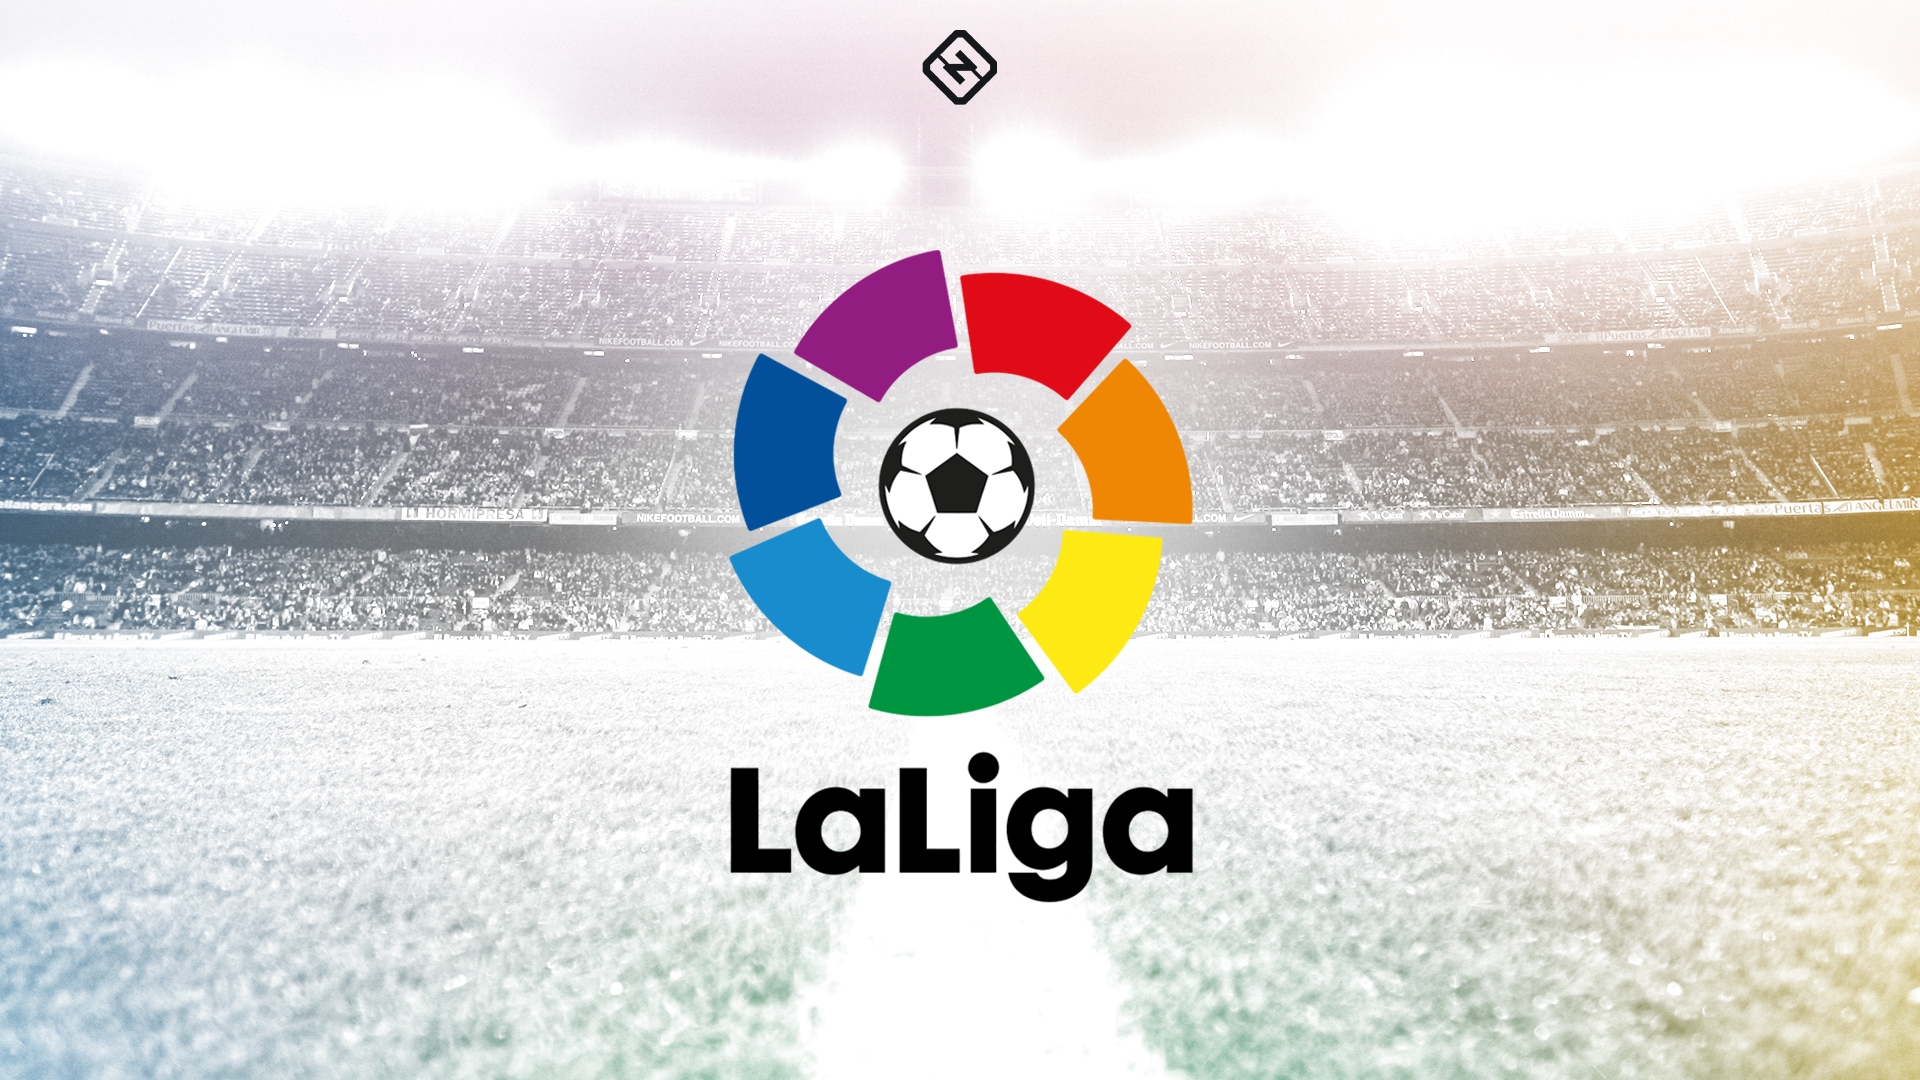 Updated La Liga TV & streaming schedule: Upcoming matches and how to watch them